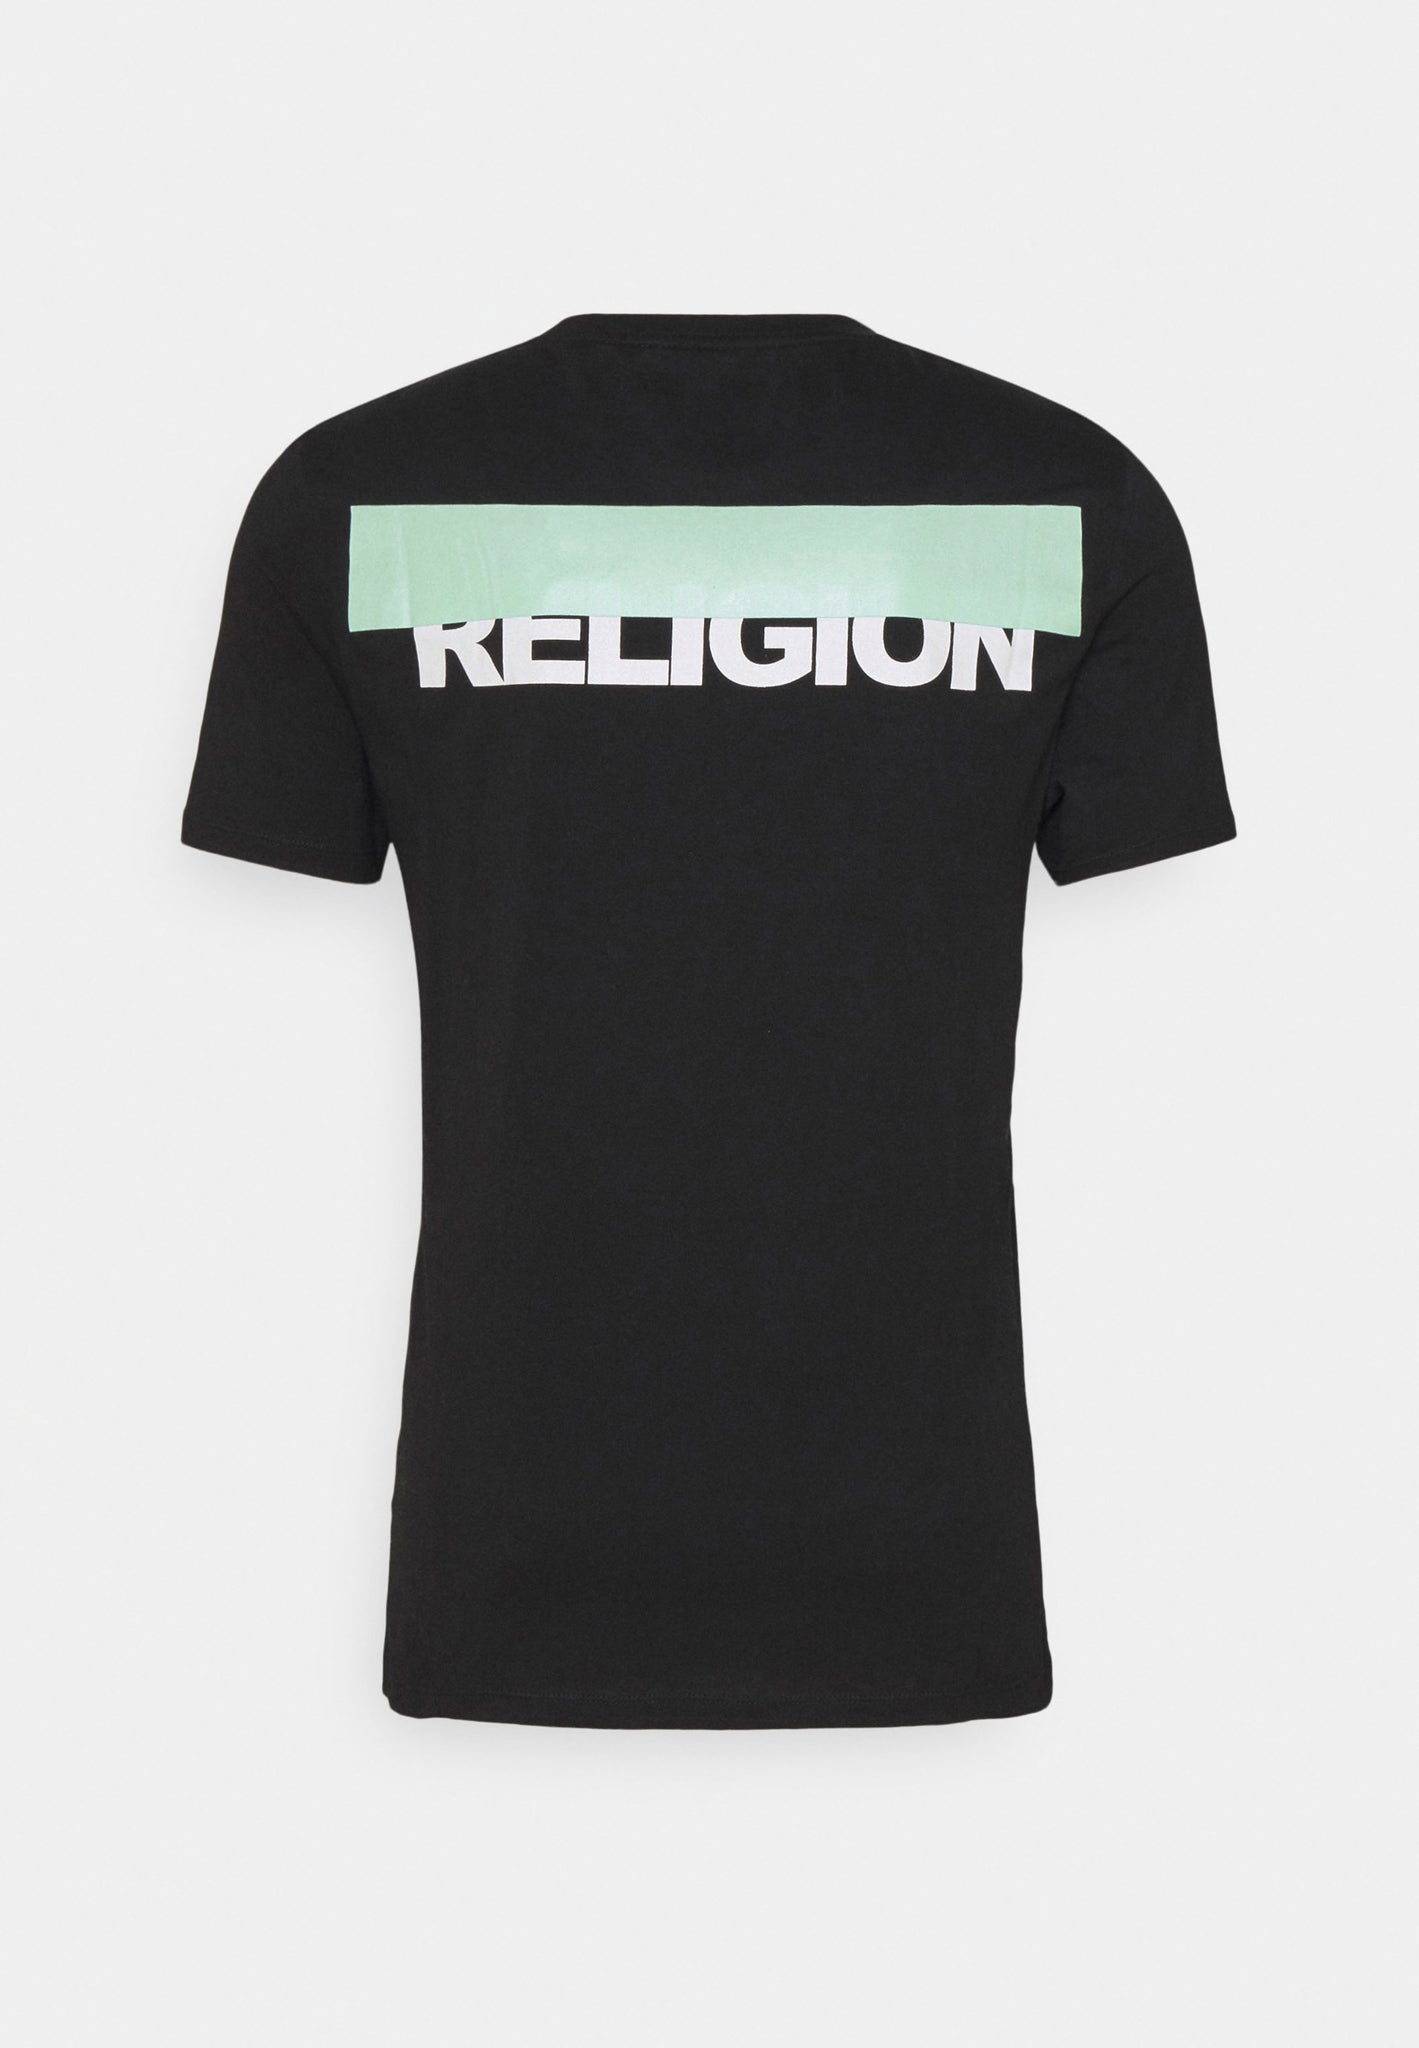 Religion ROCK ROLL PRINT T-SHIRT